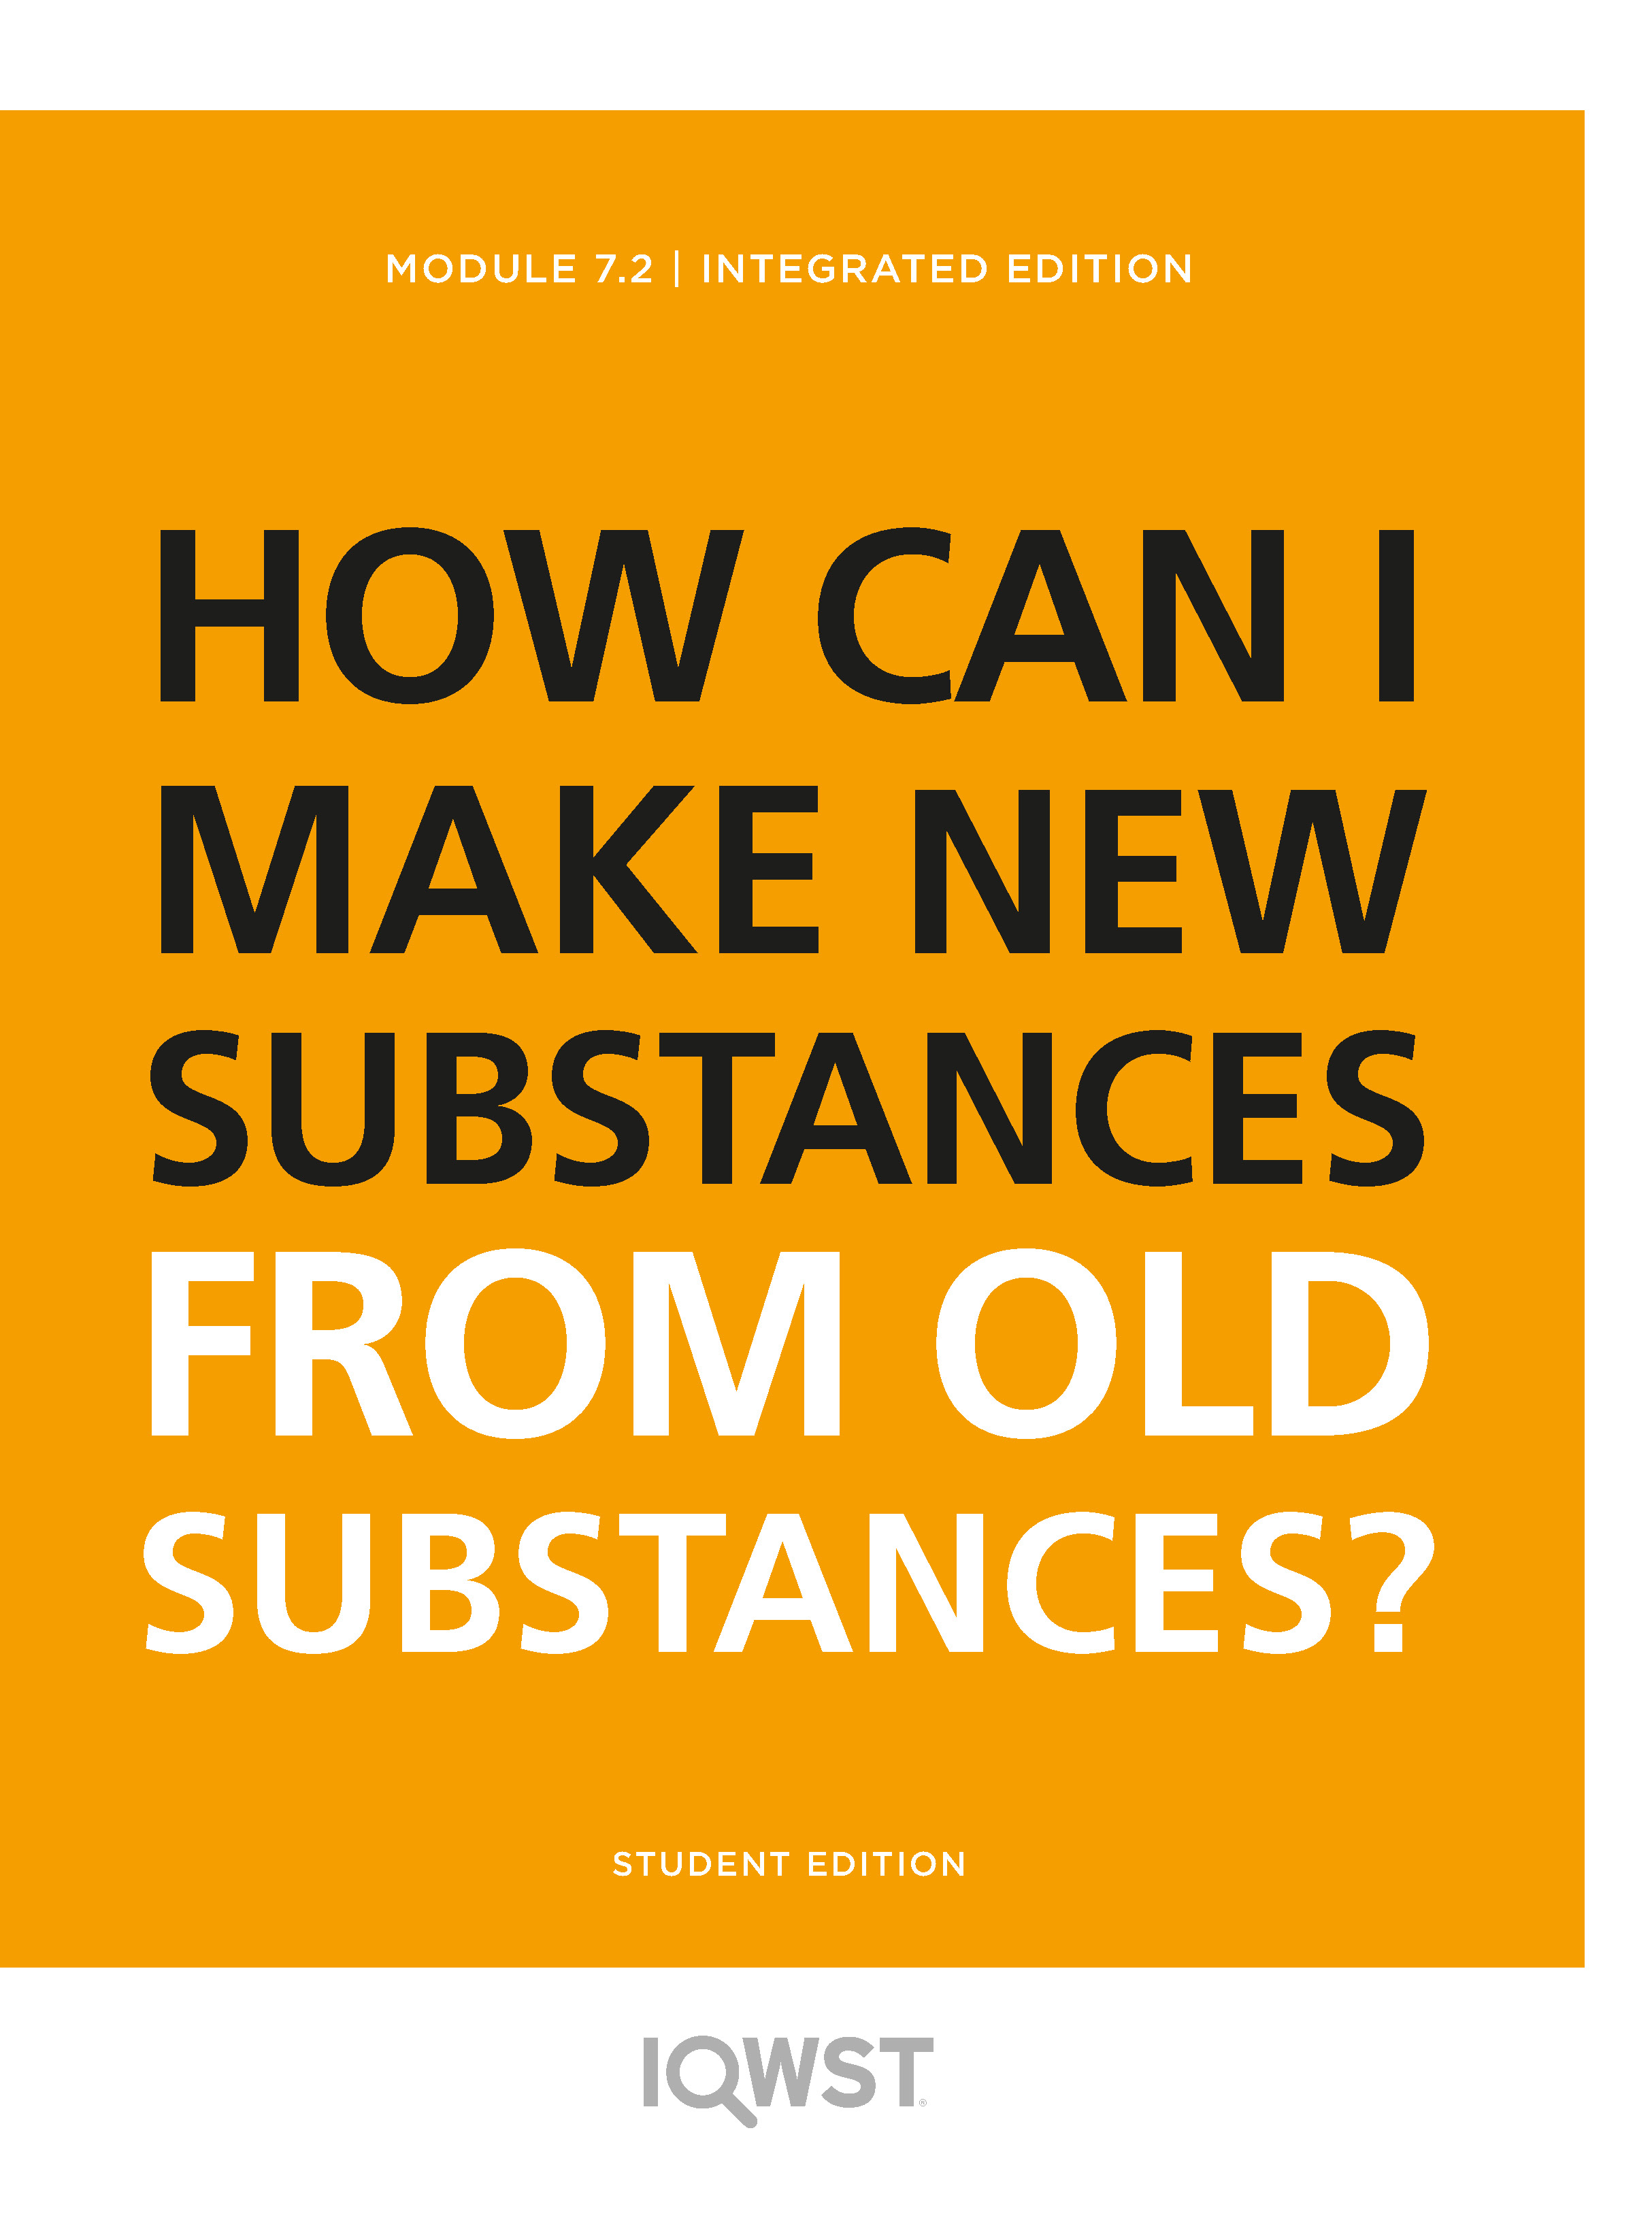 7.2 How Can I Make New Substances from Old Substances?